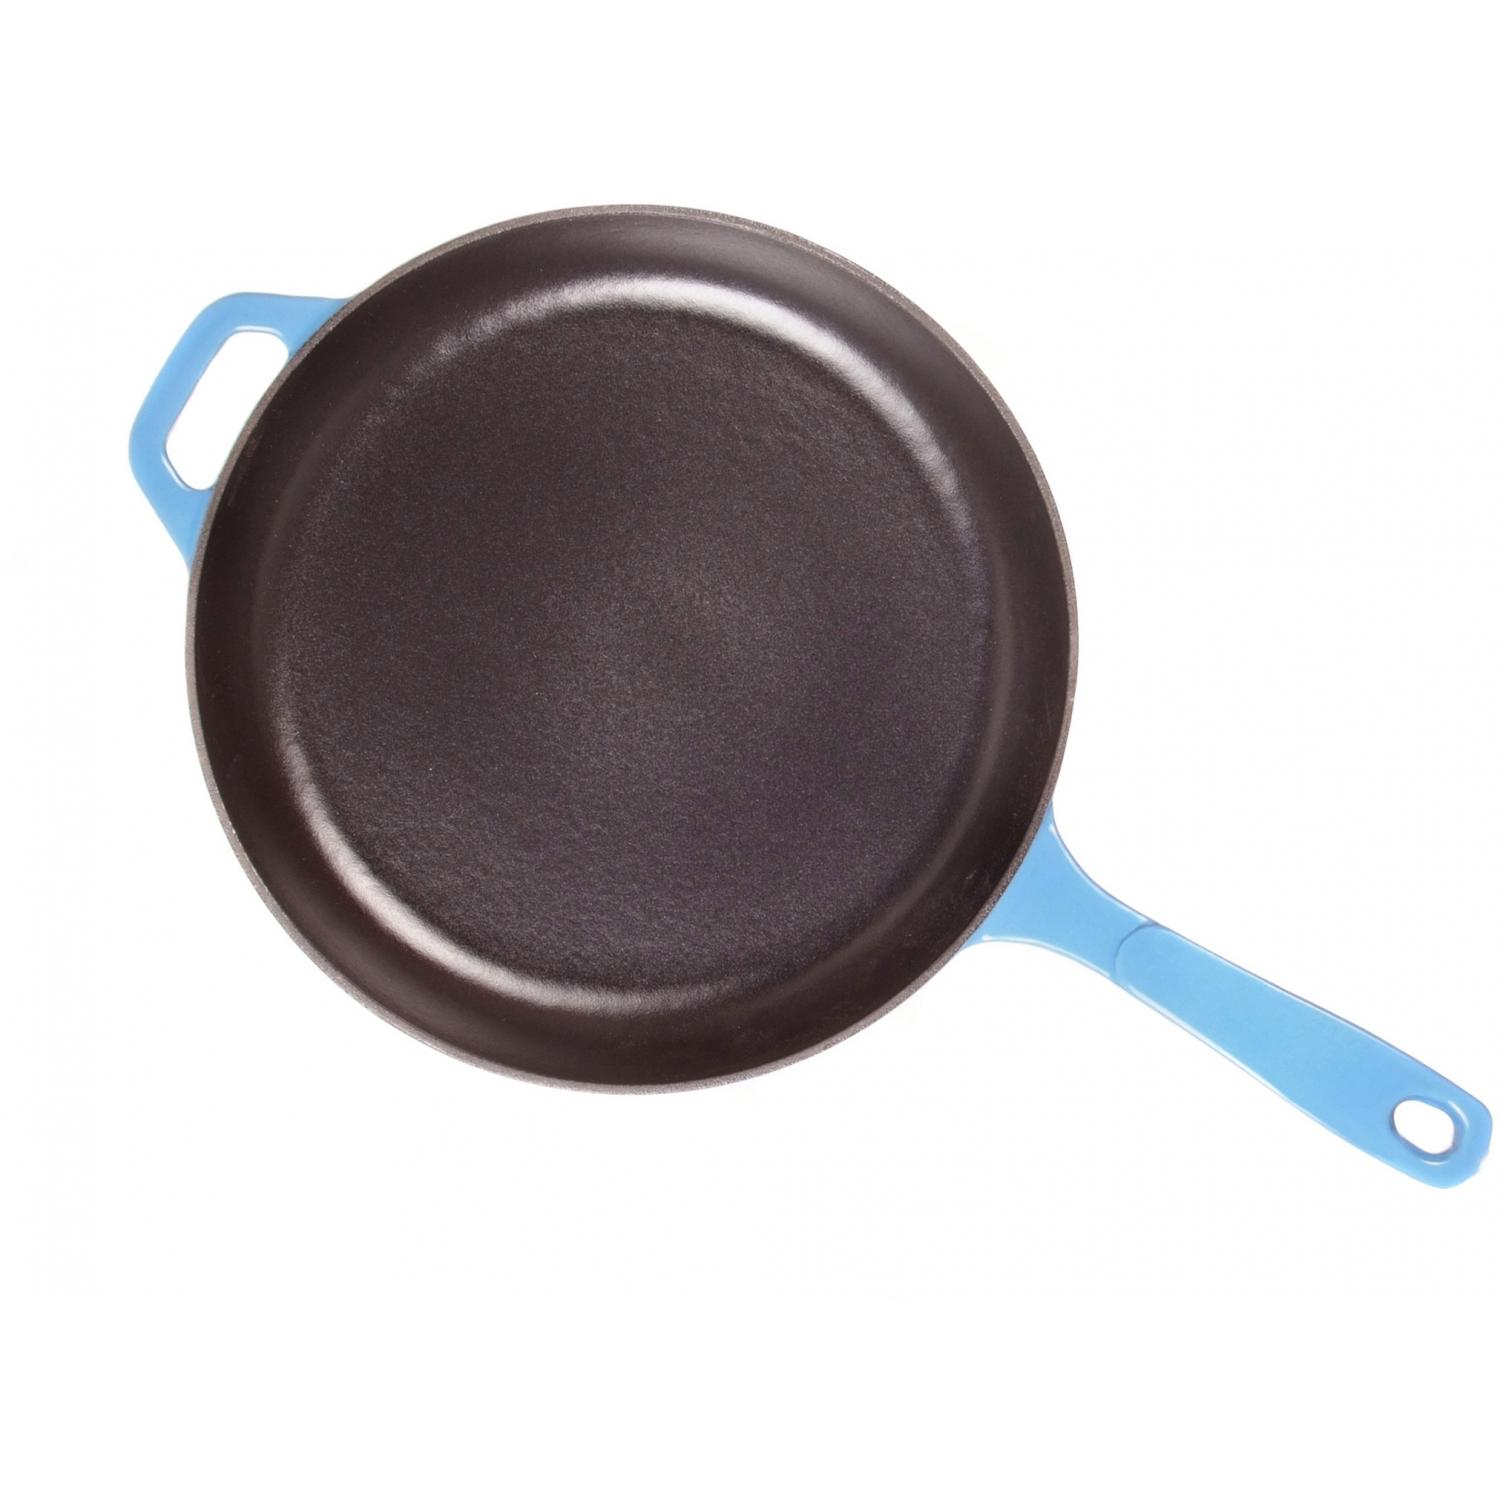 Lodge Skillets Caribbean Cast Iron Enamel Skillet, Gradated Blue - EC11S33